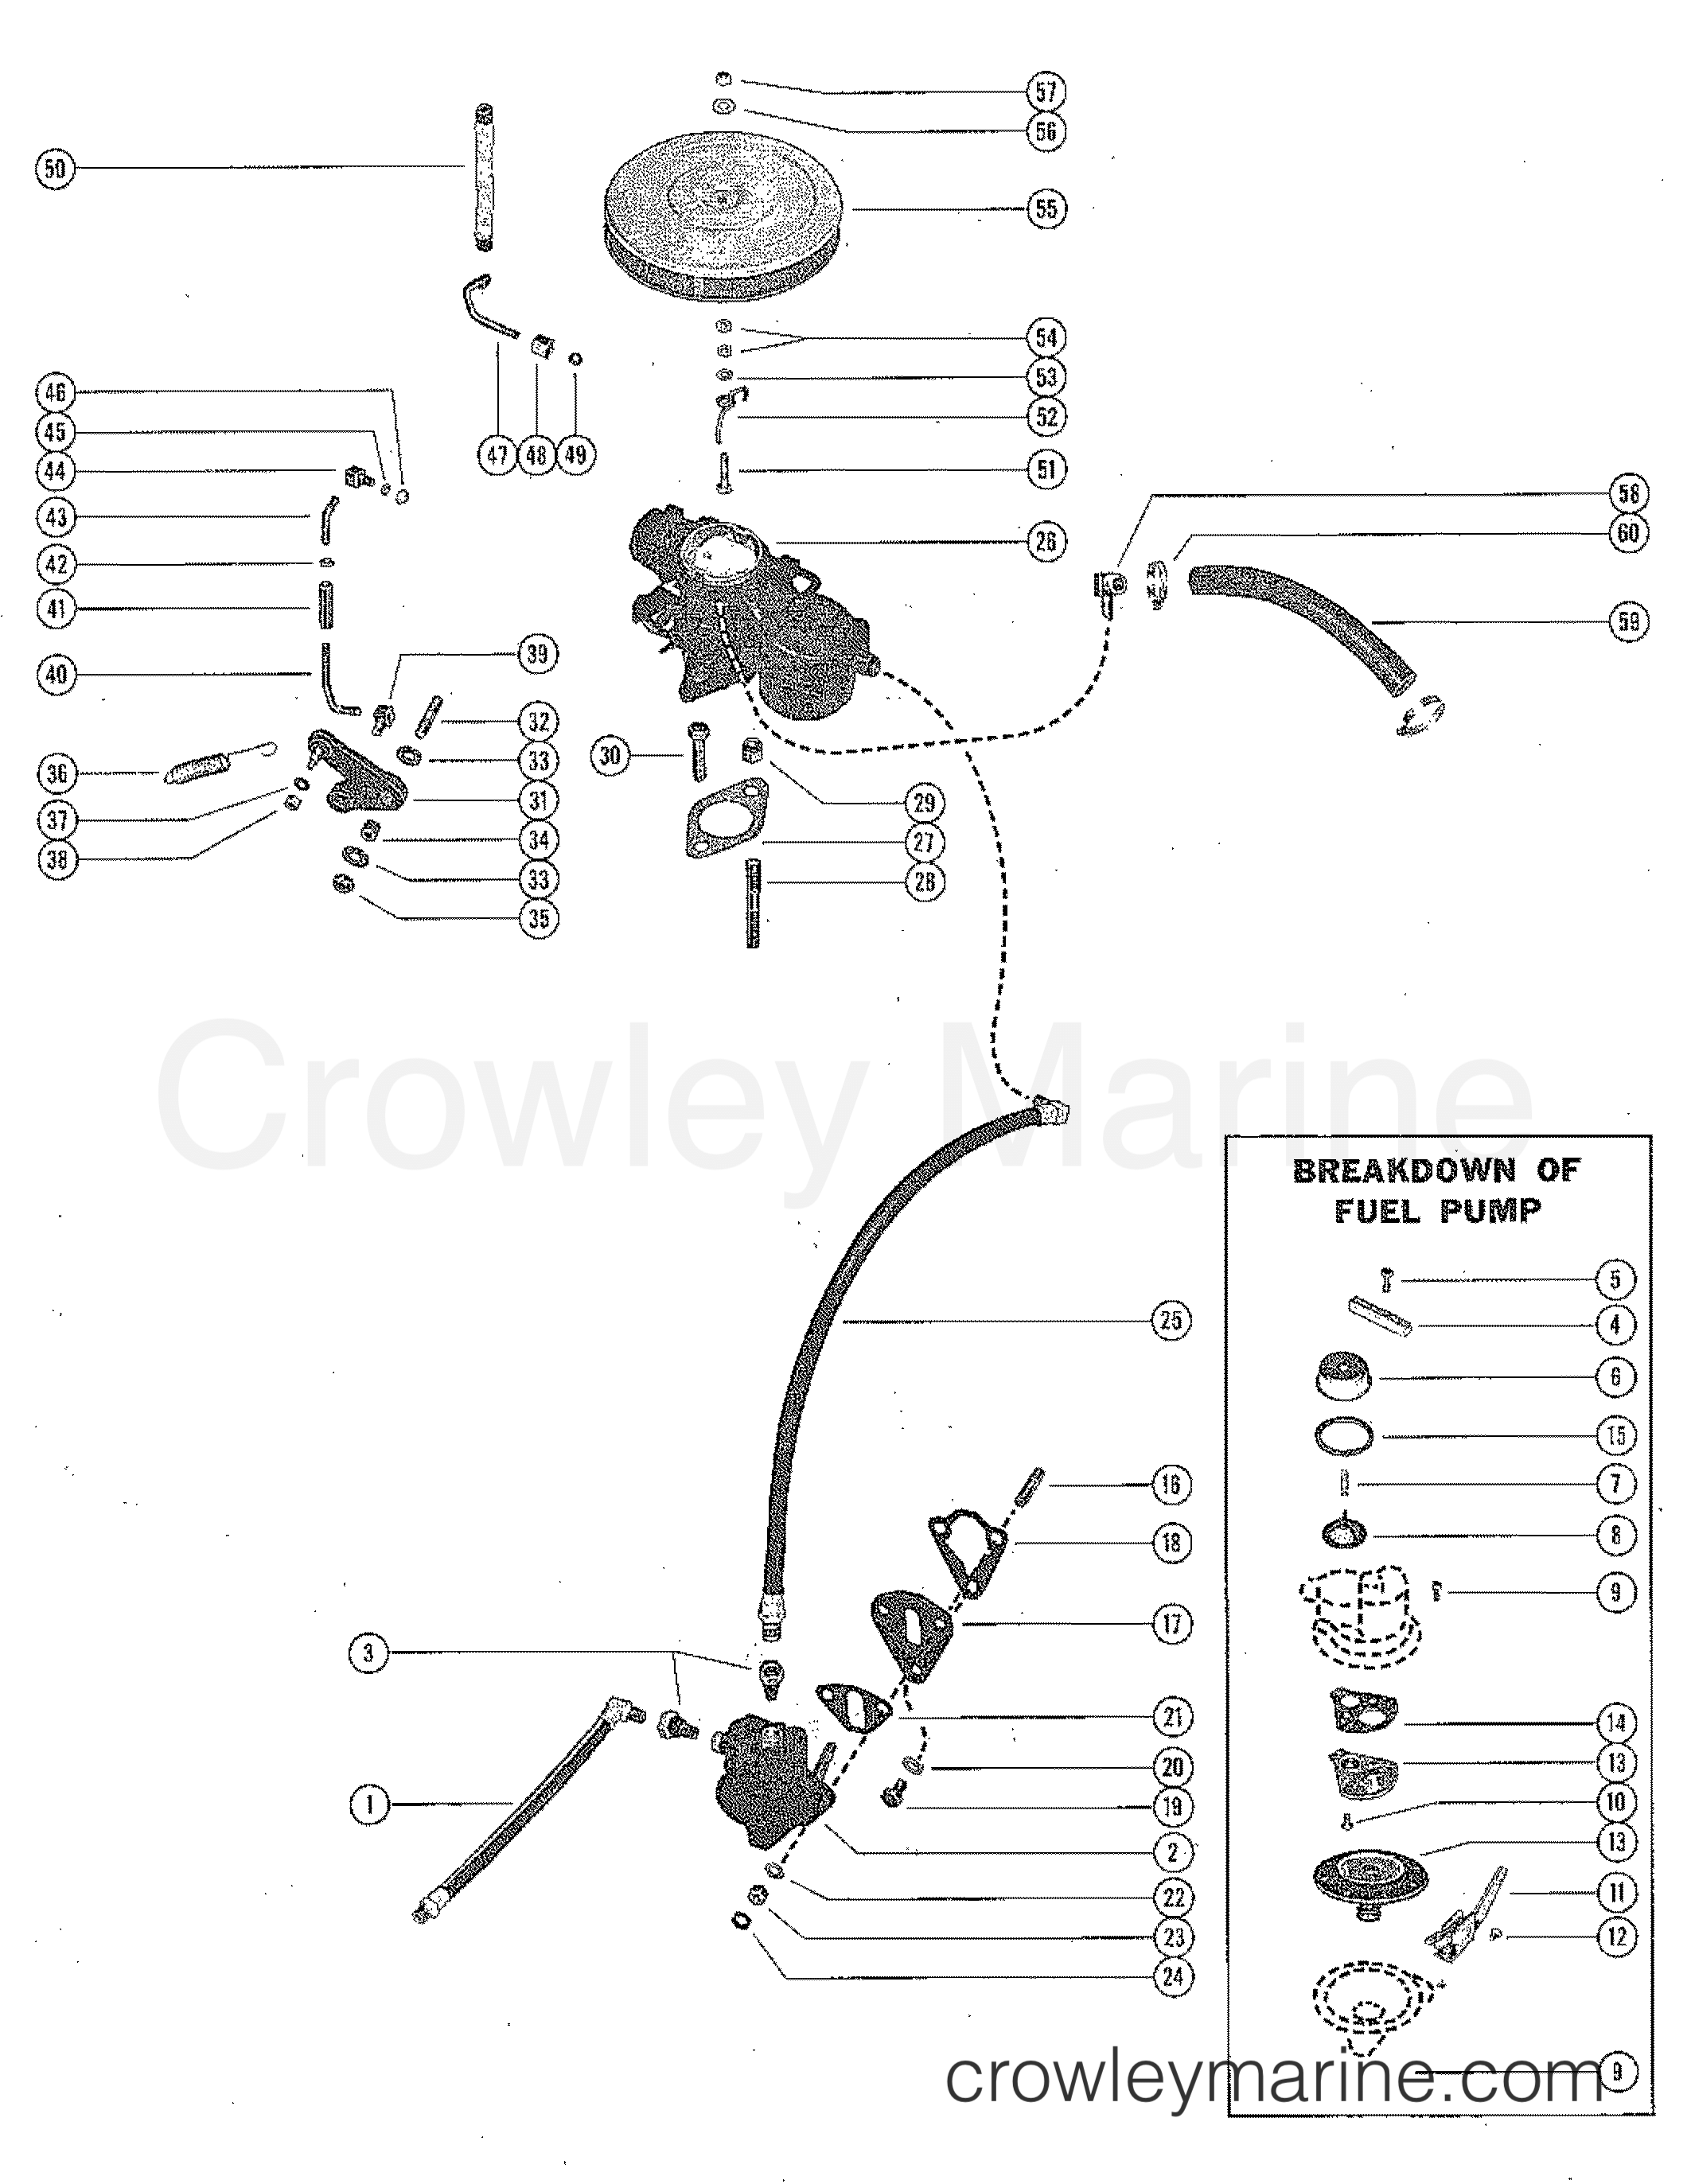 Renault Fuel Pump Diagram